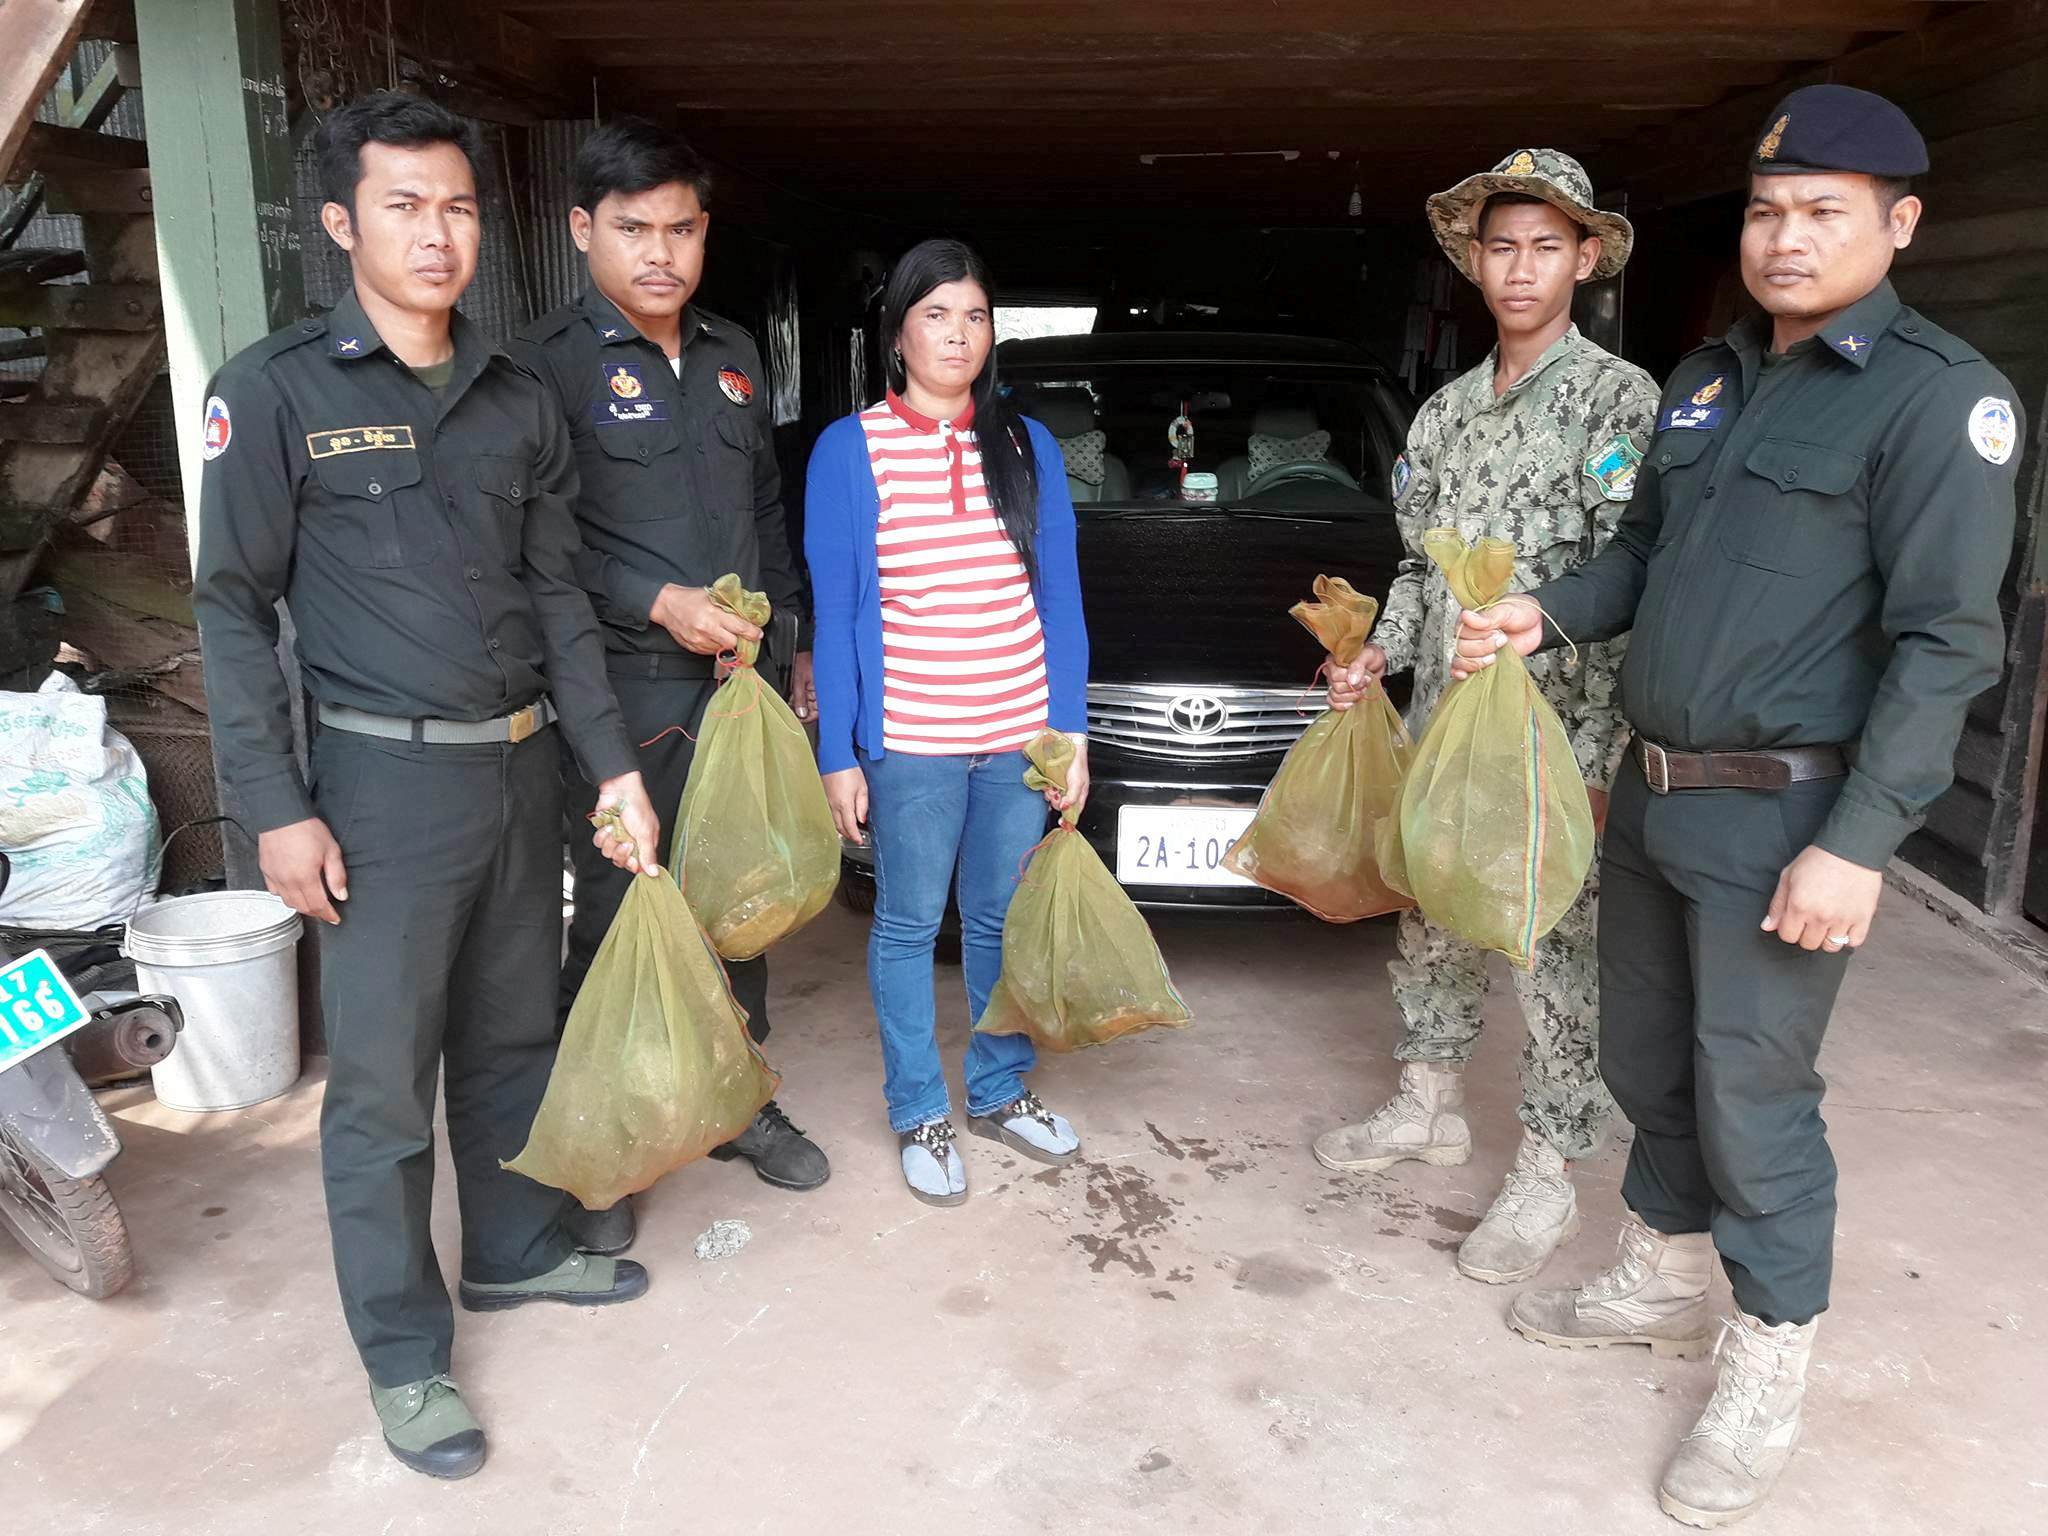 the rangers stopped a car transporting 57 turtles The rangers stopped a car transporting 57 turtles offender arrested for wildlife trade